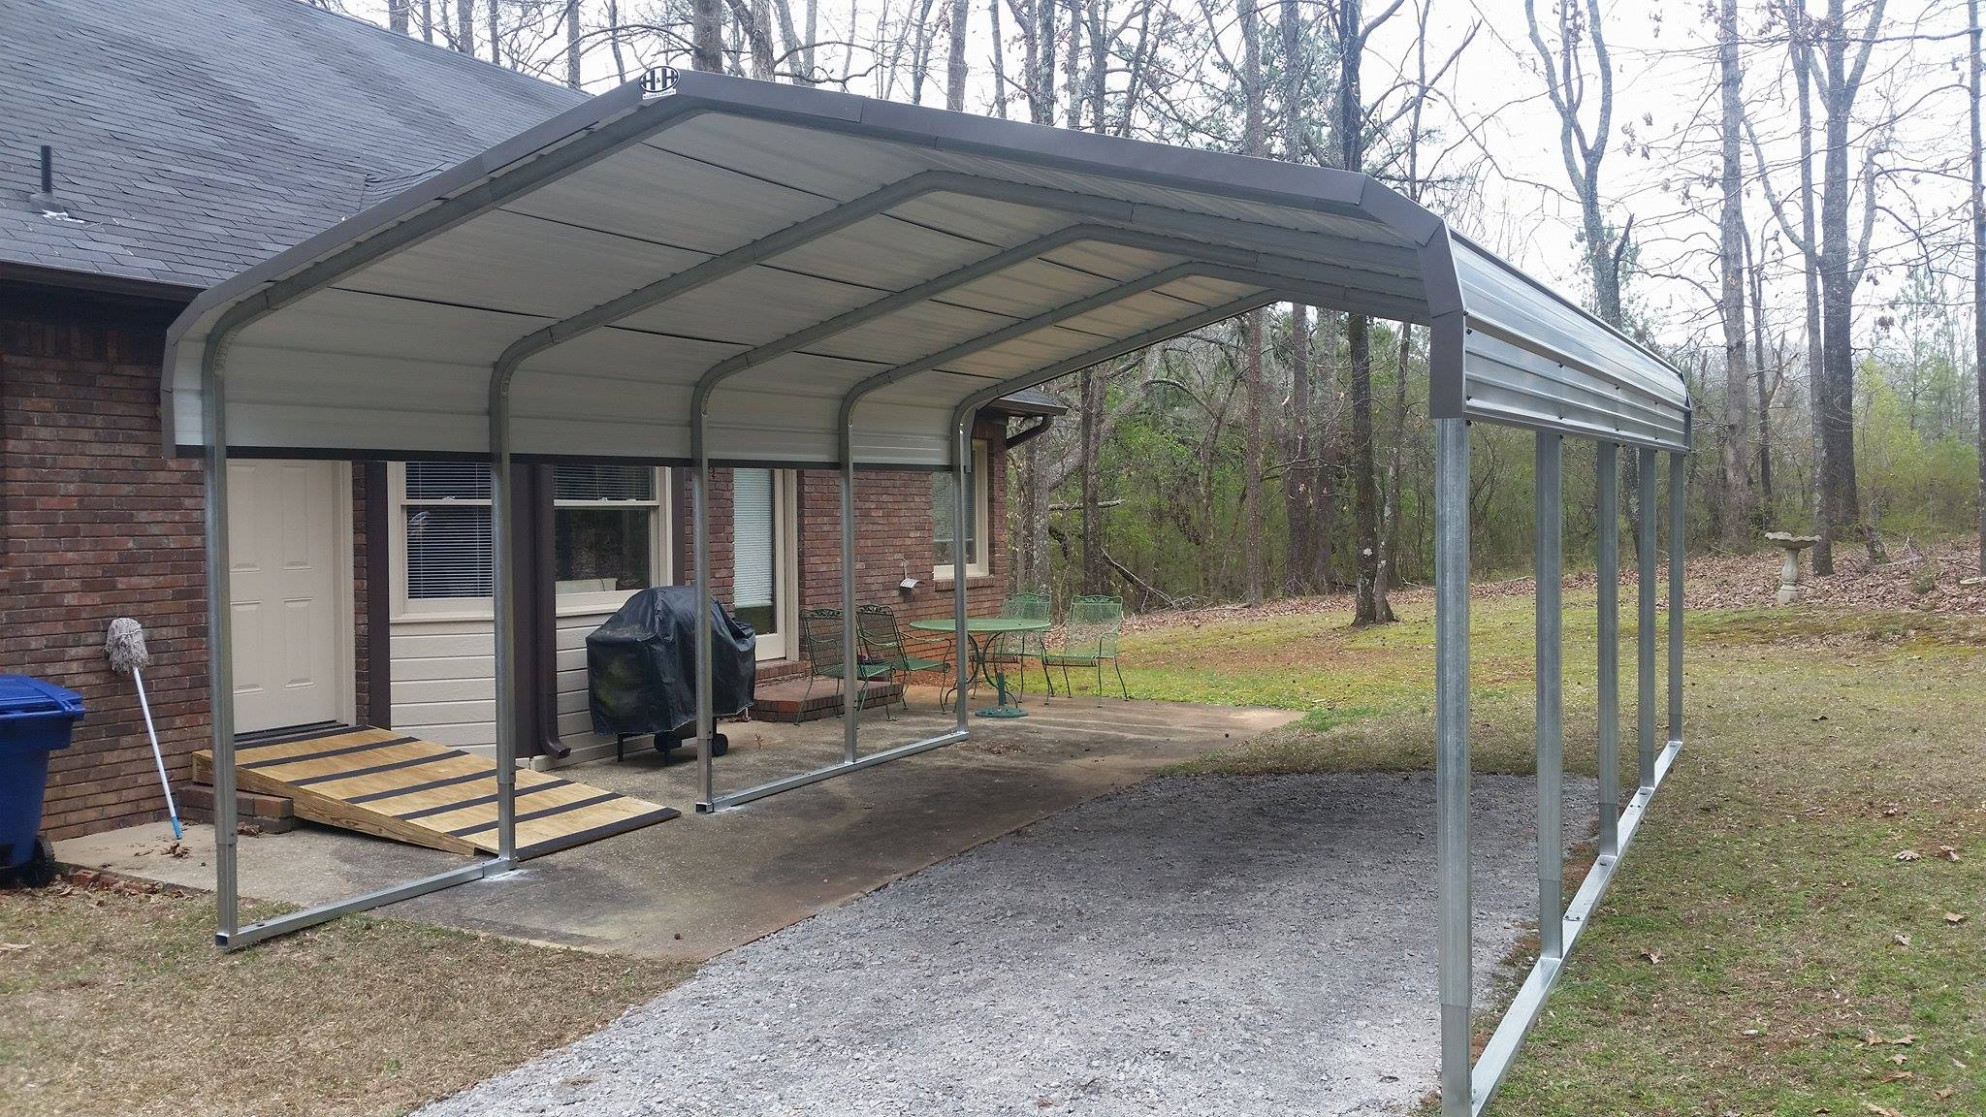 Carports Home Depot Creativity Carports Direct Carports Decorating Home Depot